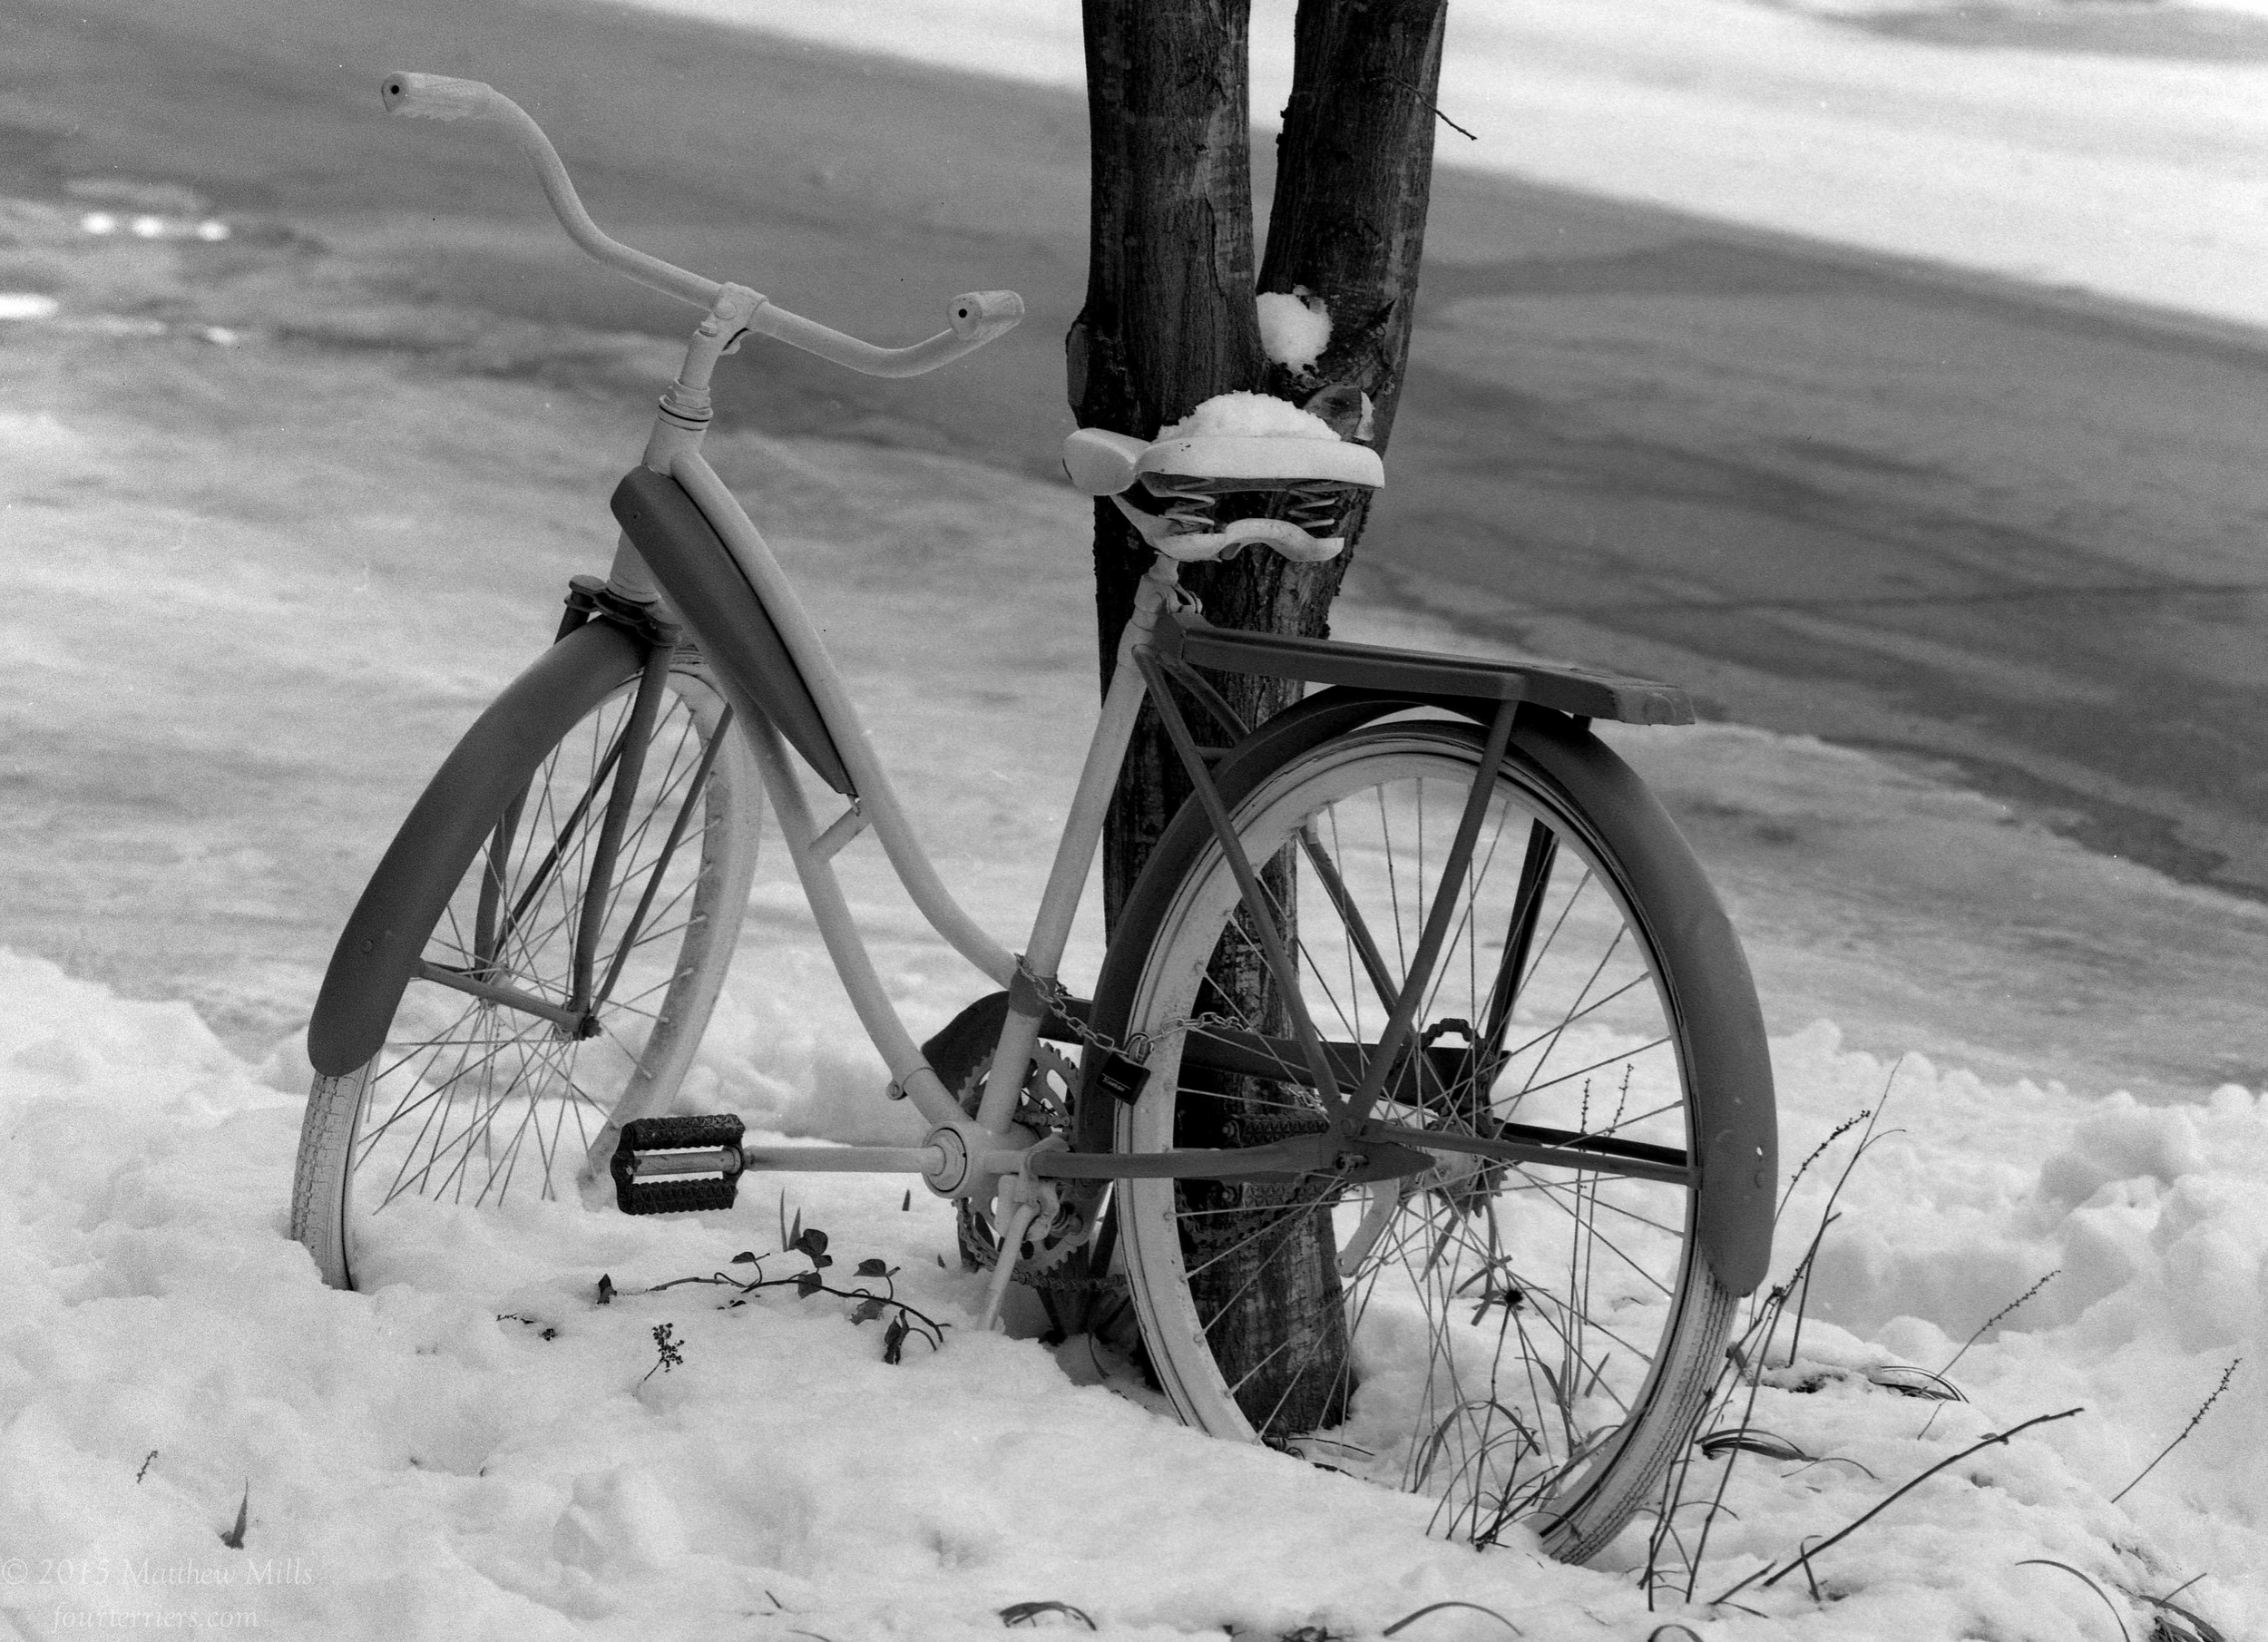 Bike in Snow on a Warm Spring Day